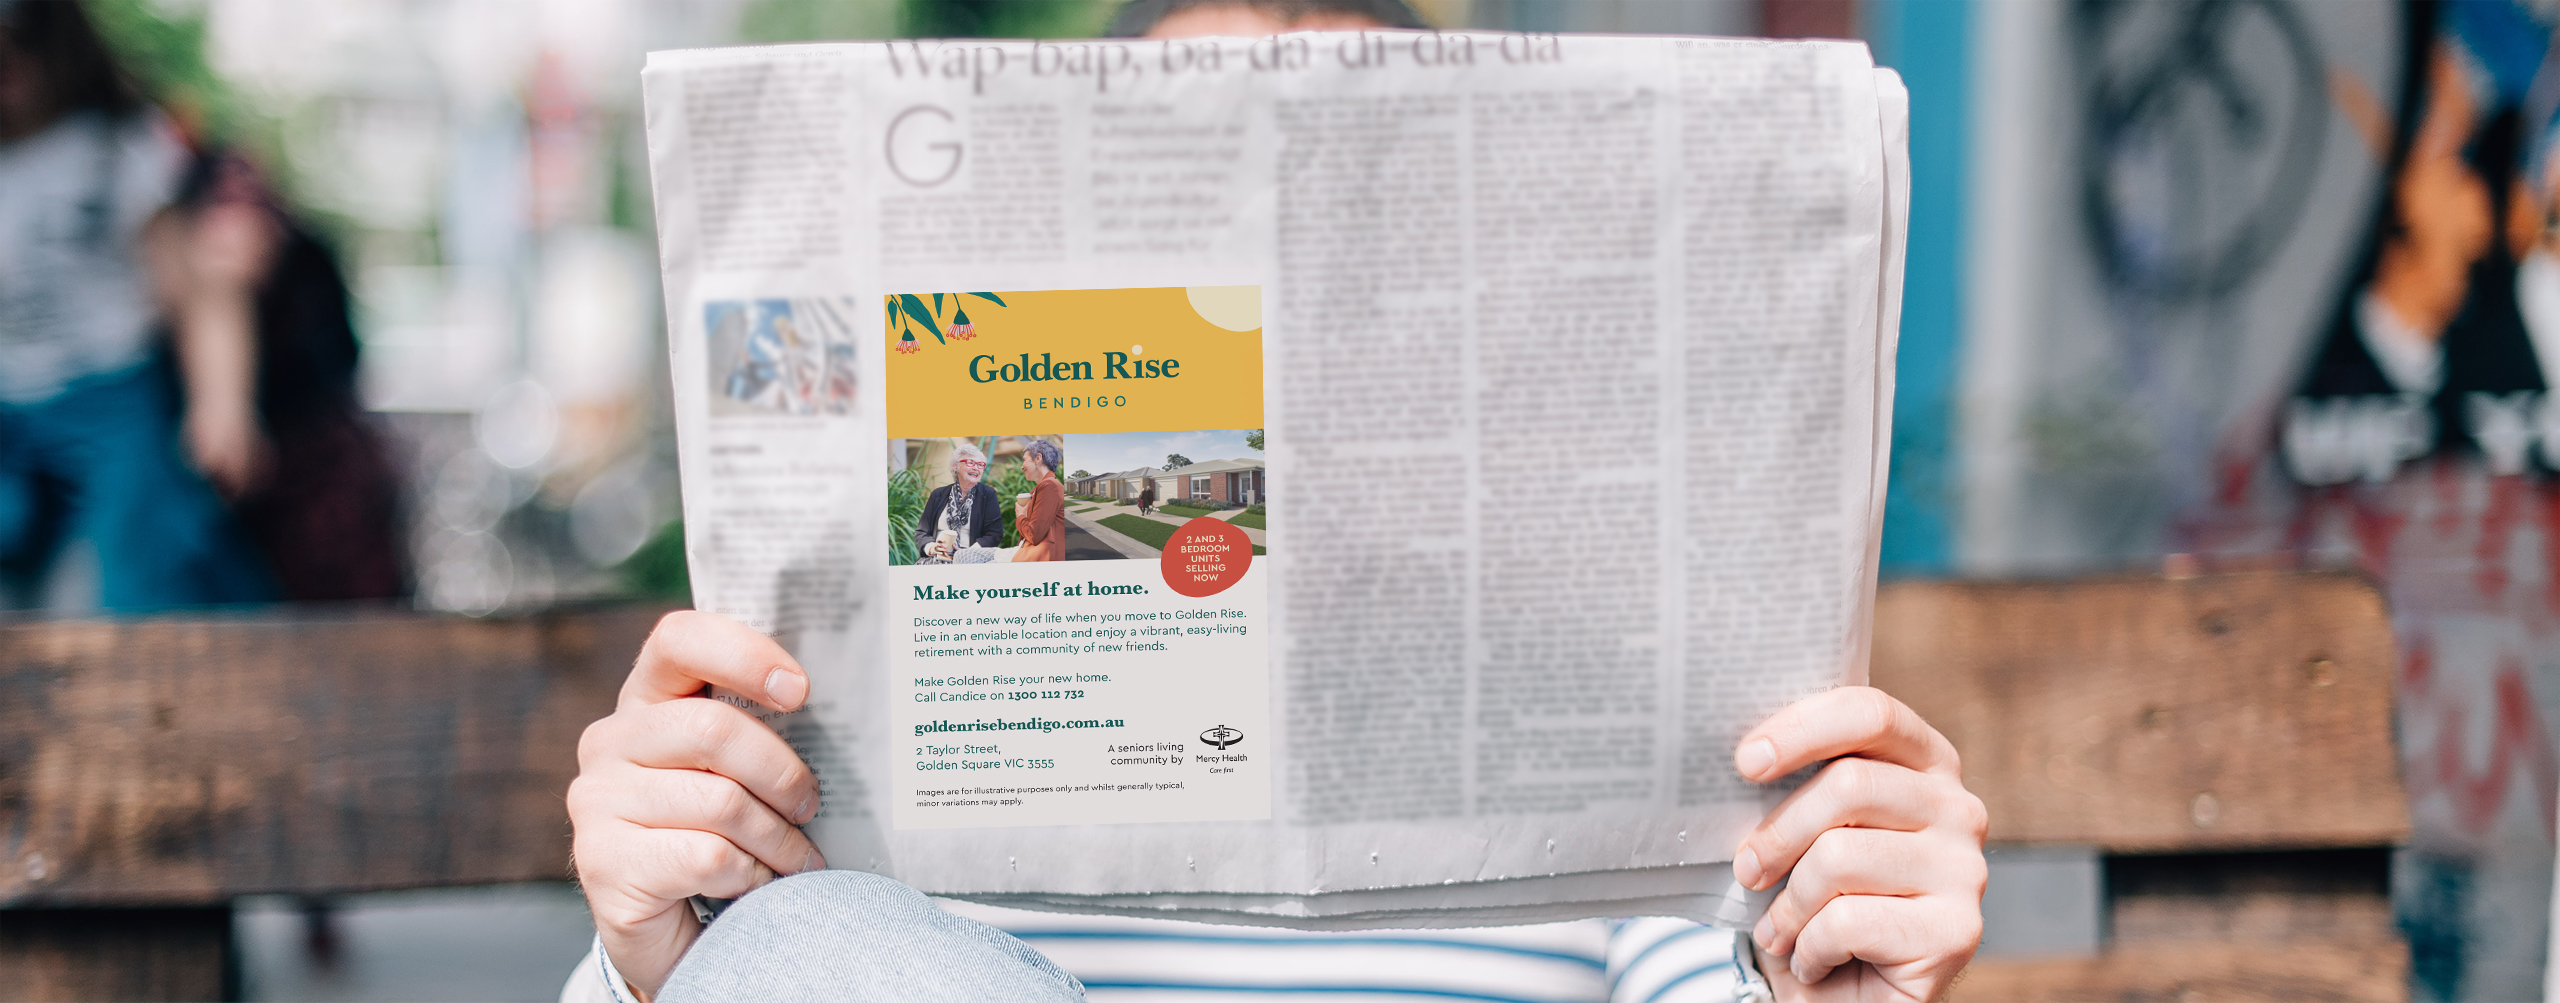 Mercy Health Golden Rise Property Marketing Newspaper Ad